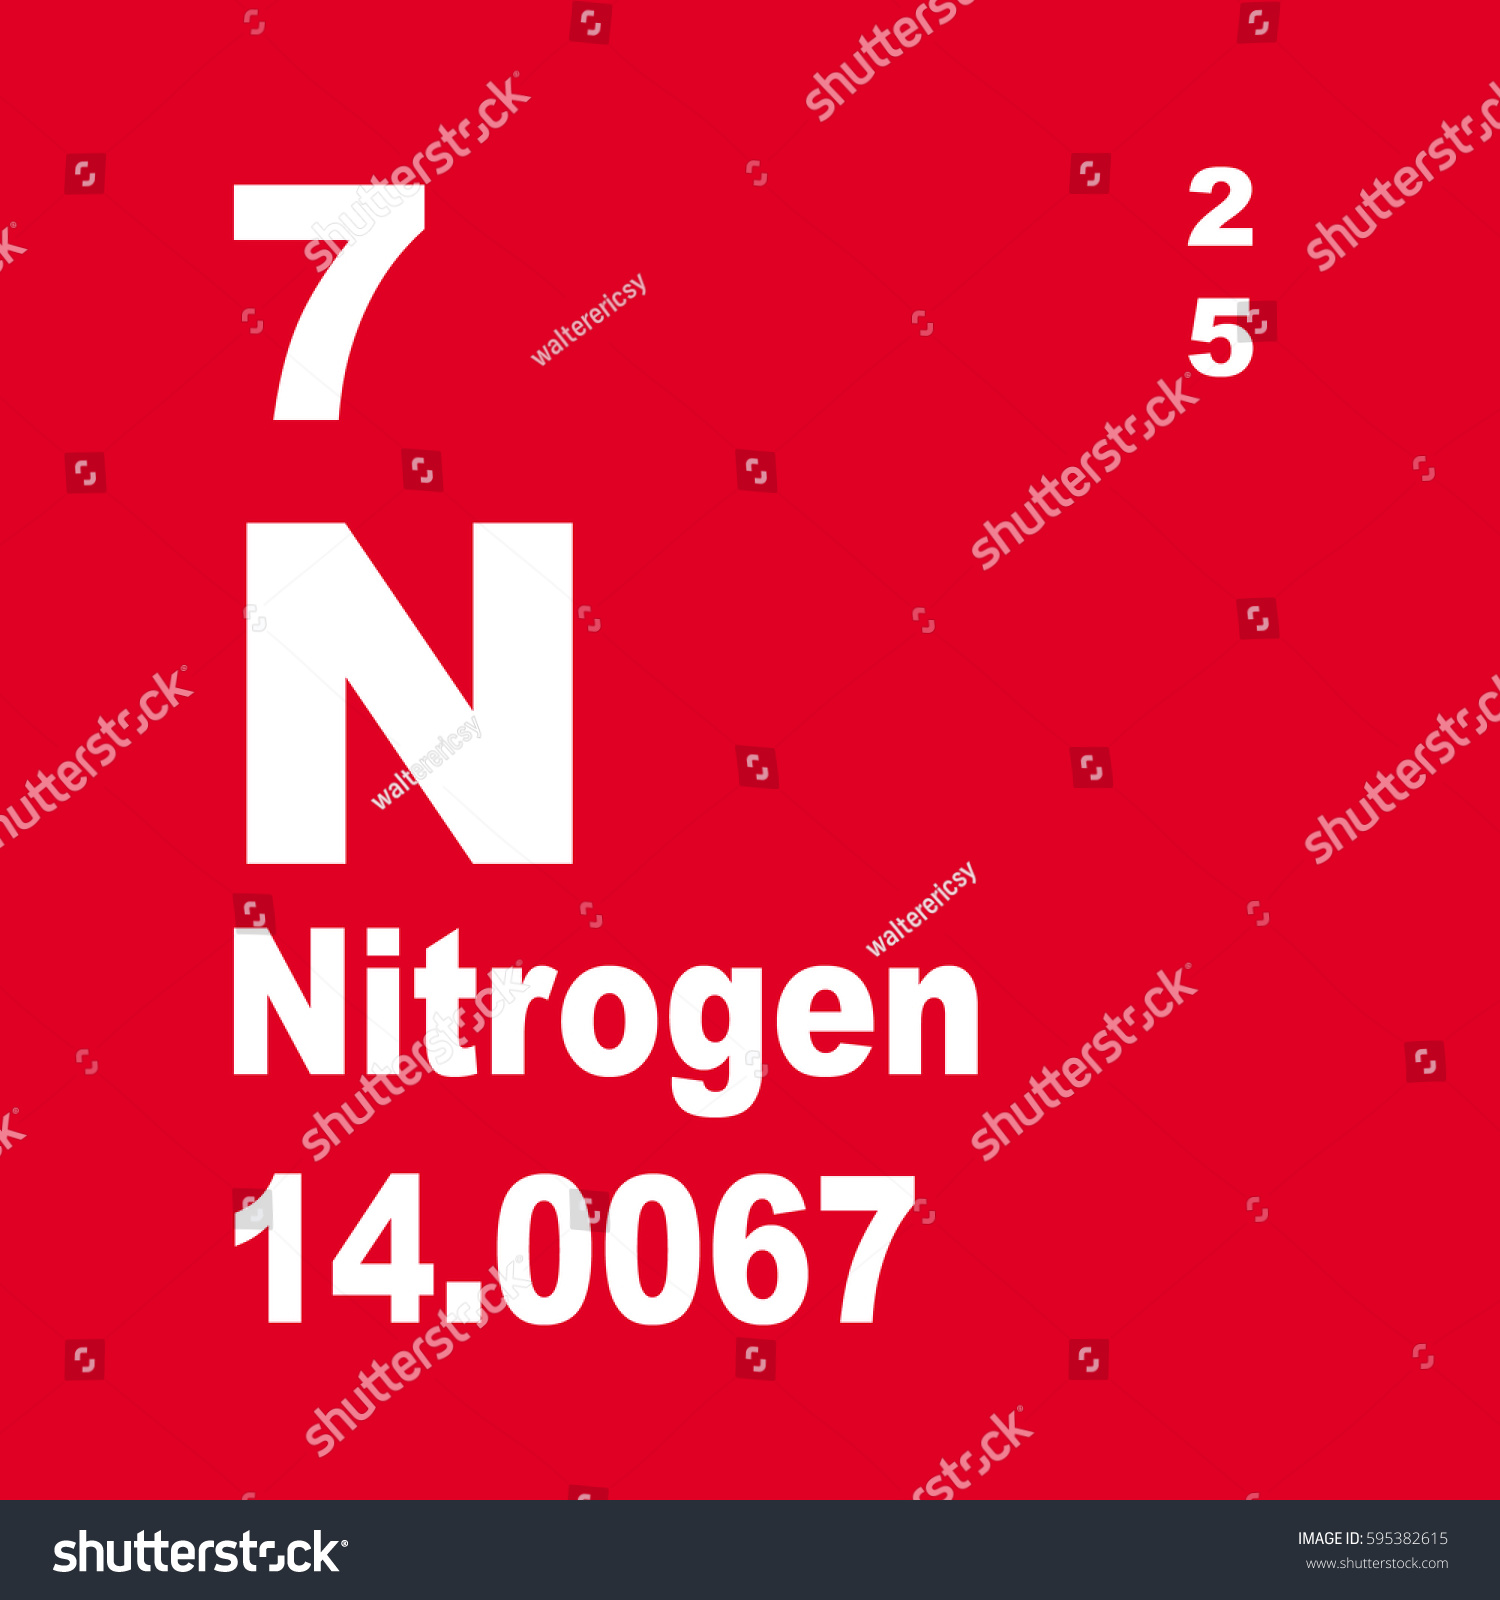 Periodic table of elements n gallery periodic table images periodic table of elements n image collections periodic table images n element periodic table gallery periodic gamestrikefo Image collections